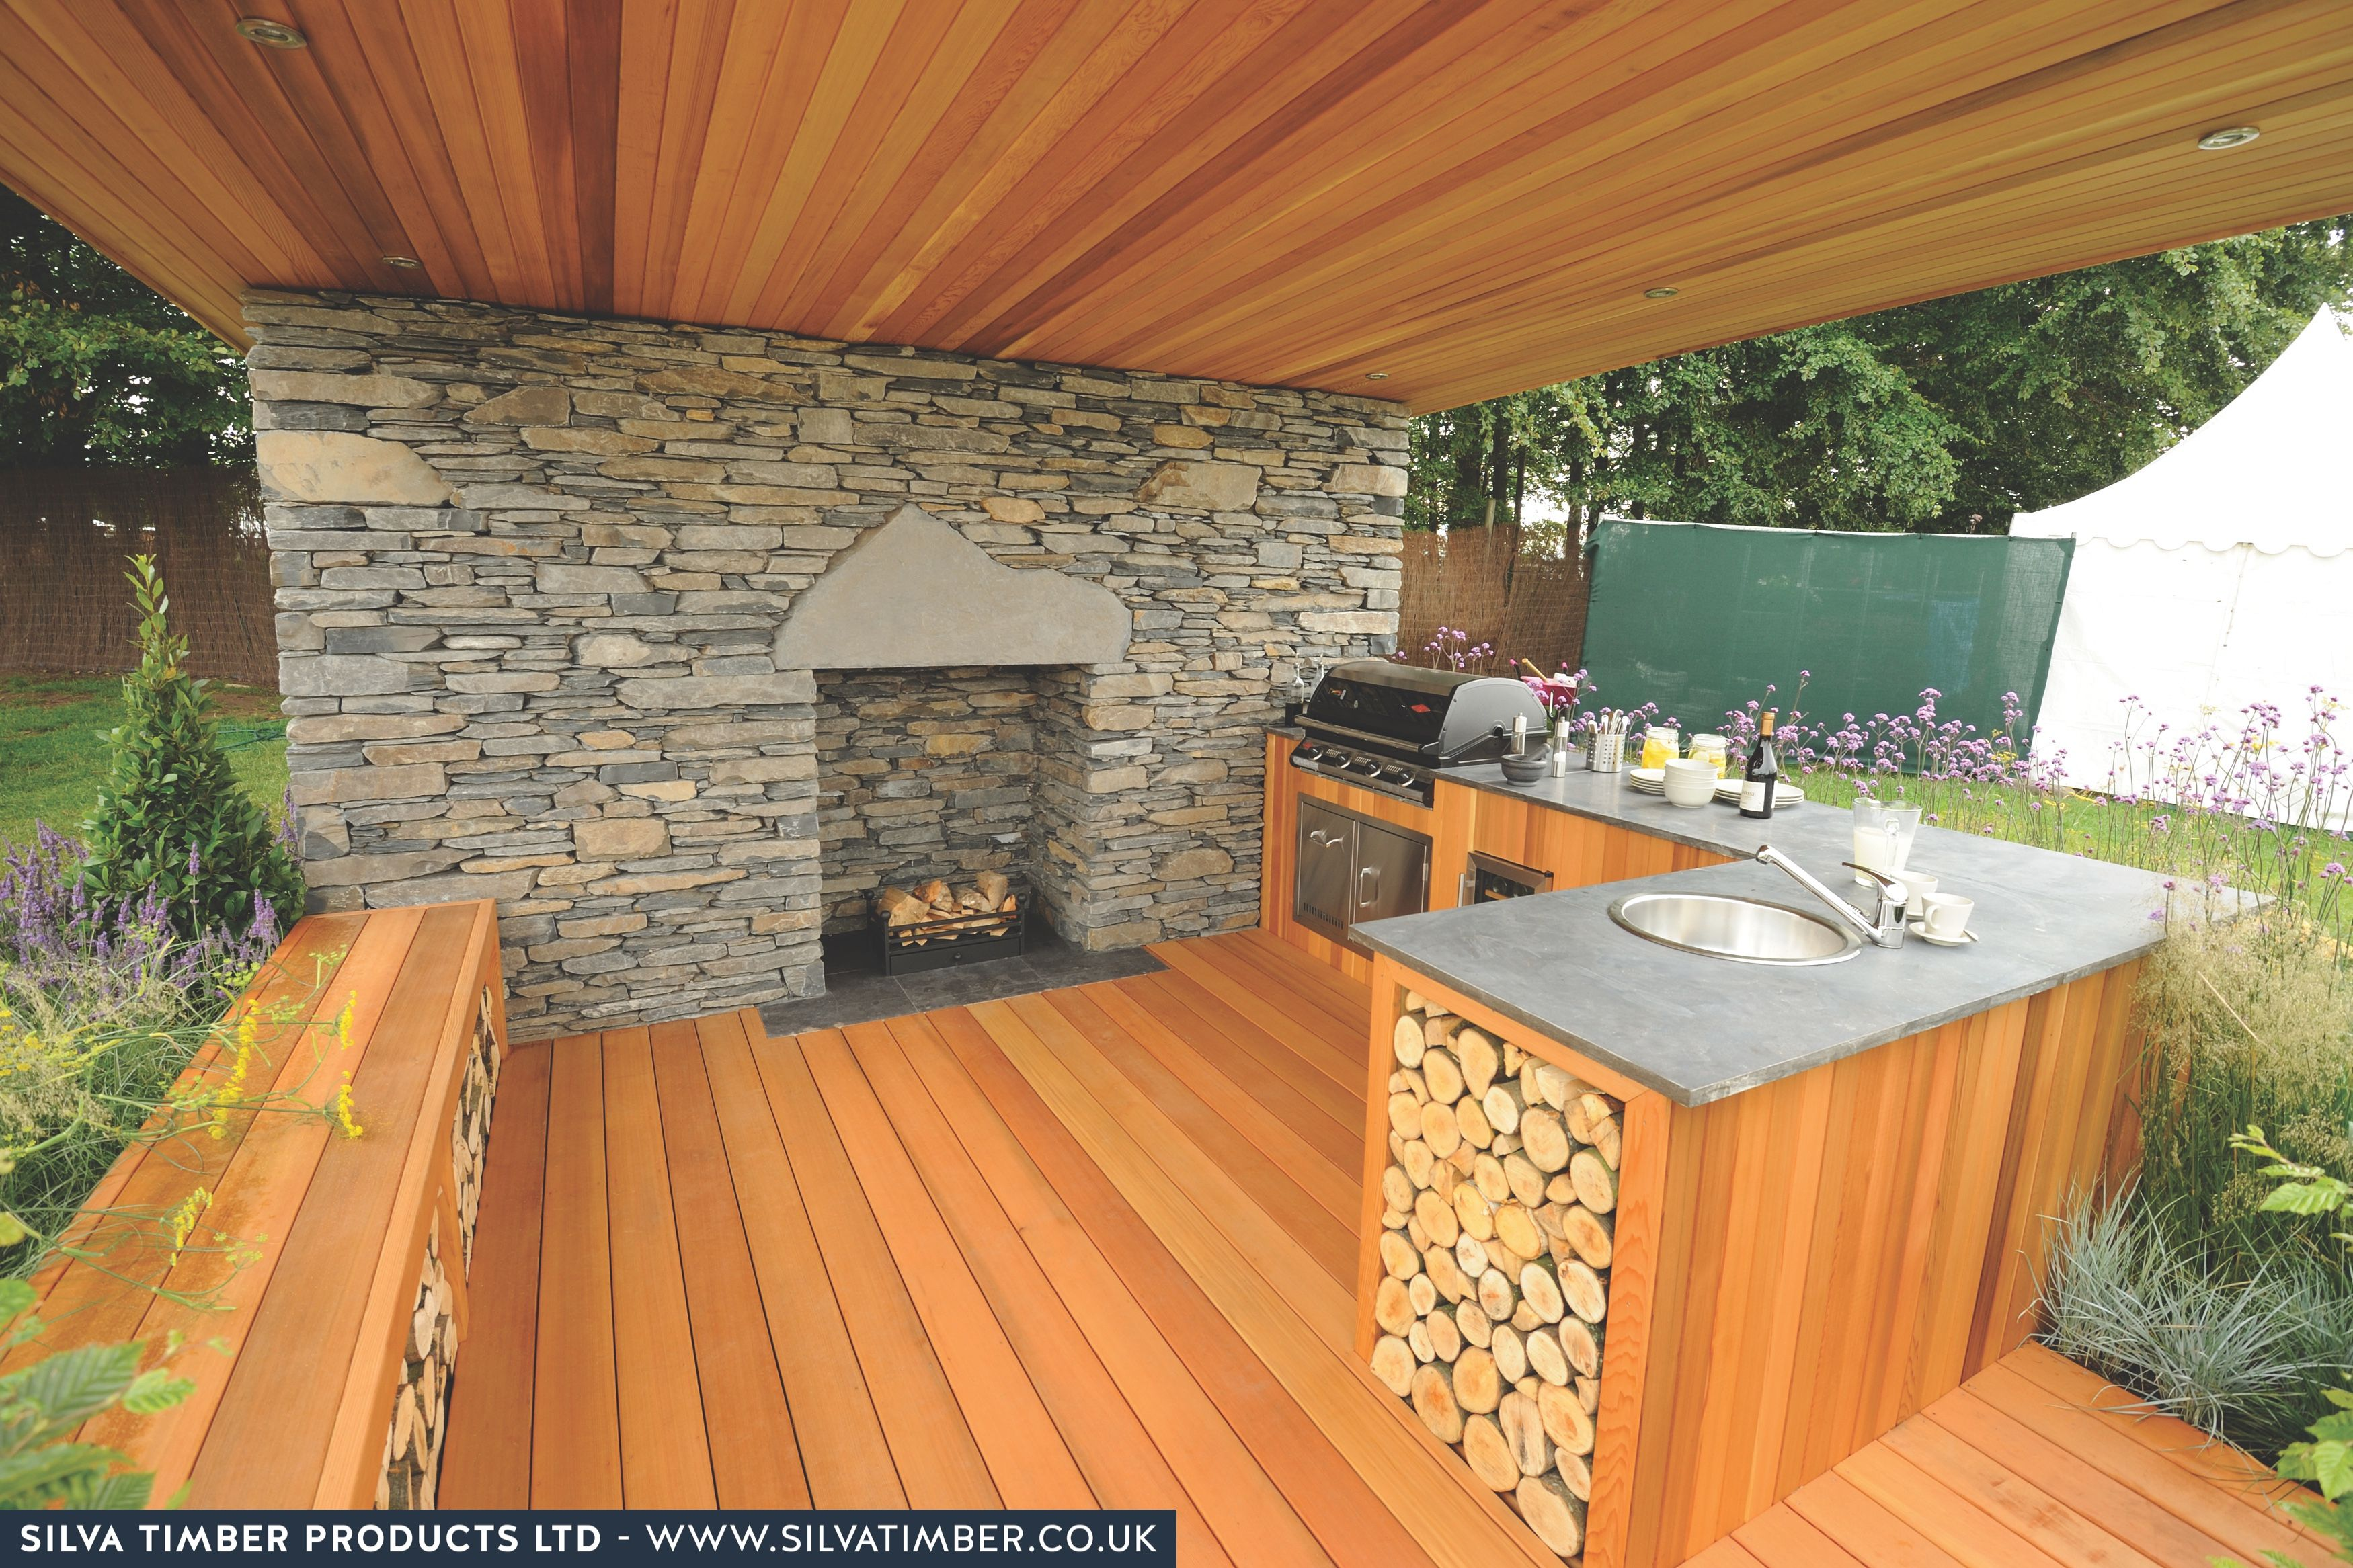 Red Cedar Is Used To Give This Outdoor Kitchen And Fireplace Combo Extra Durability And A Warm Design Appeal V Outdoor Kitchen Design Outdoor Kitchen Backyard